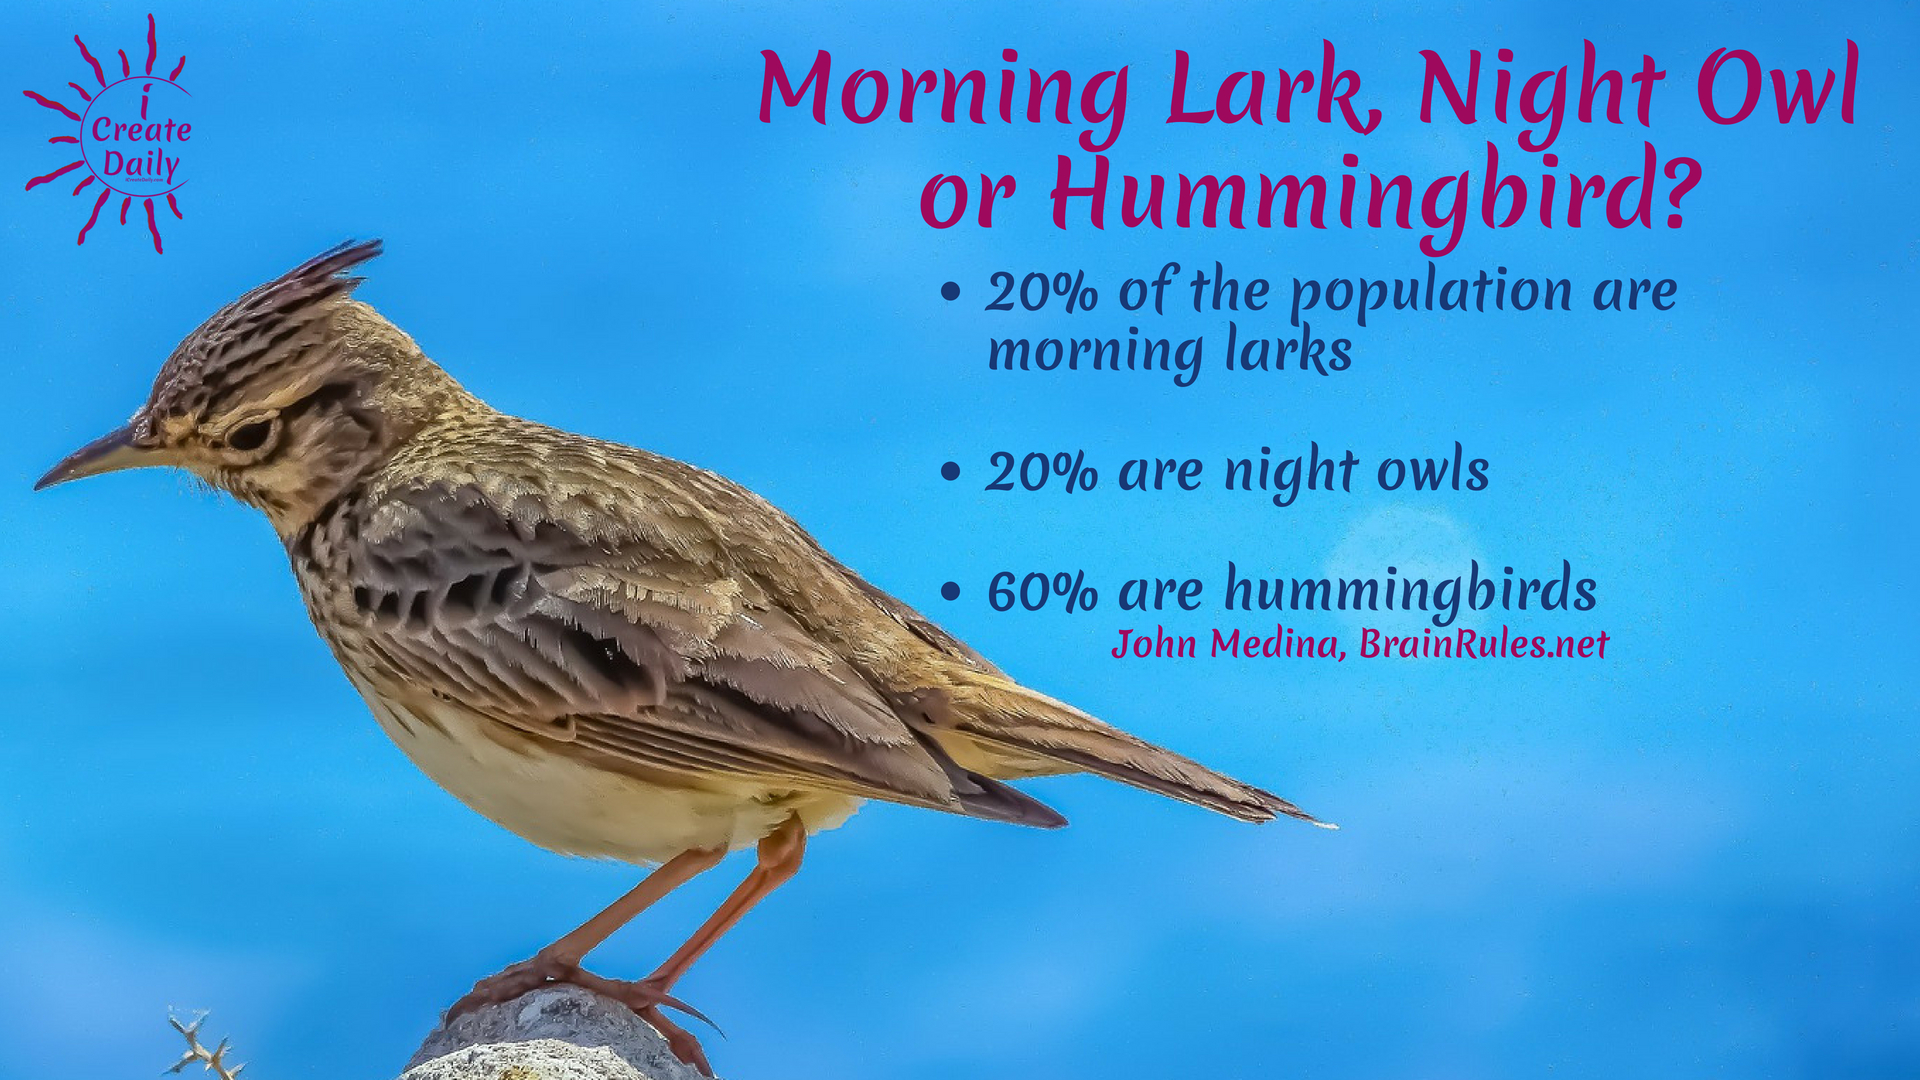 ARE YOU A MORNING PERSON OR NIGHT OWL?Morning Person or Night Owl? 60% of the population are hummingbirds. What?!?  That's a new one! #MorningLark #NightOwl #Hummingbird #MostCreativeTime #GoalSetting #DailyGoals #MorningRoutine #WakeUpEarly